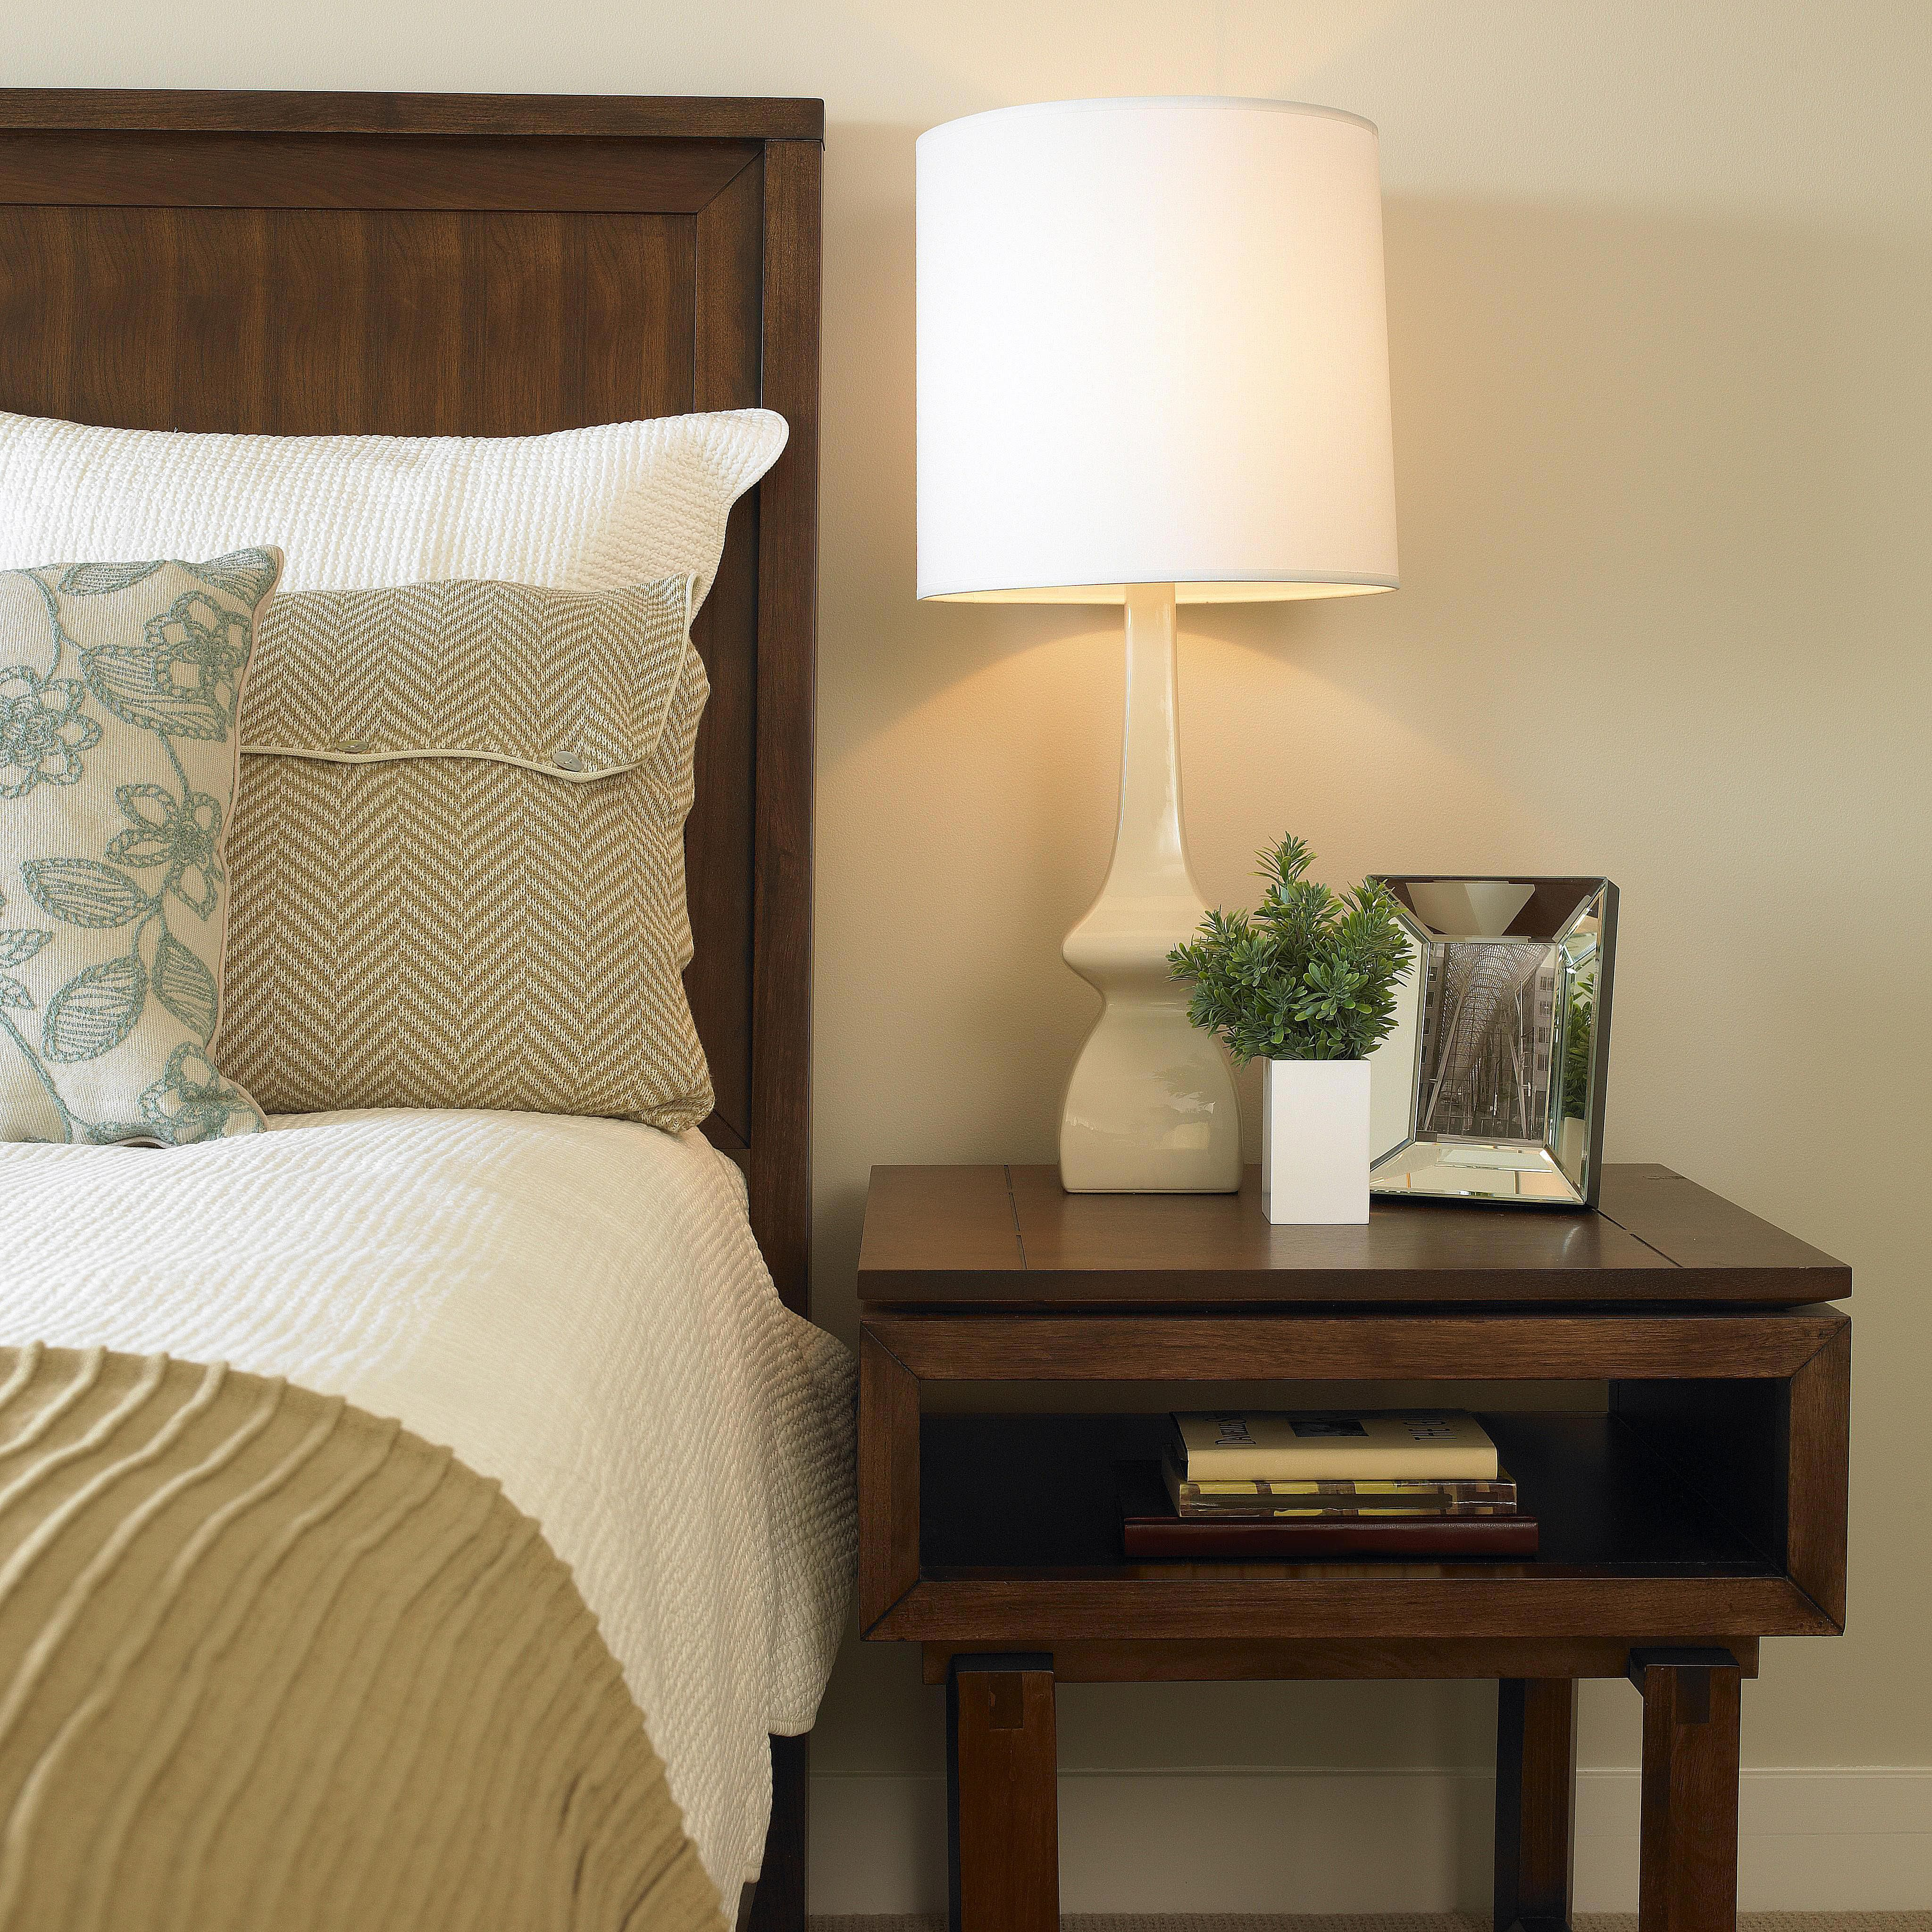 lamp for bedroom. Here s Everything You Need to Know About Choosing a Bedside Lamp  Bedroom Ideas Master Lighting